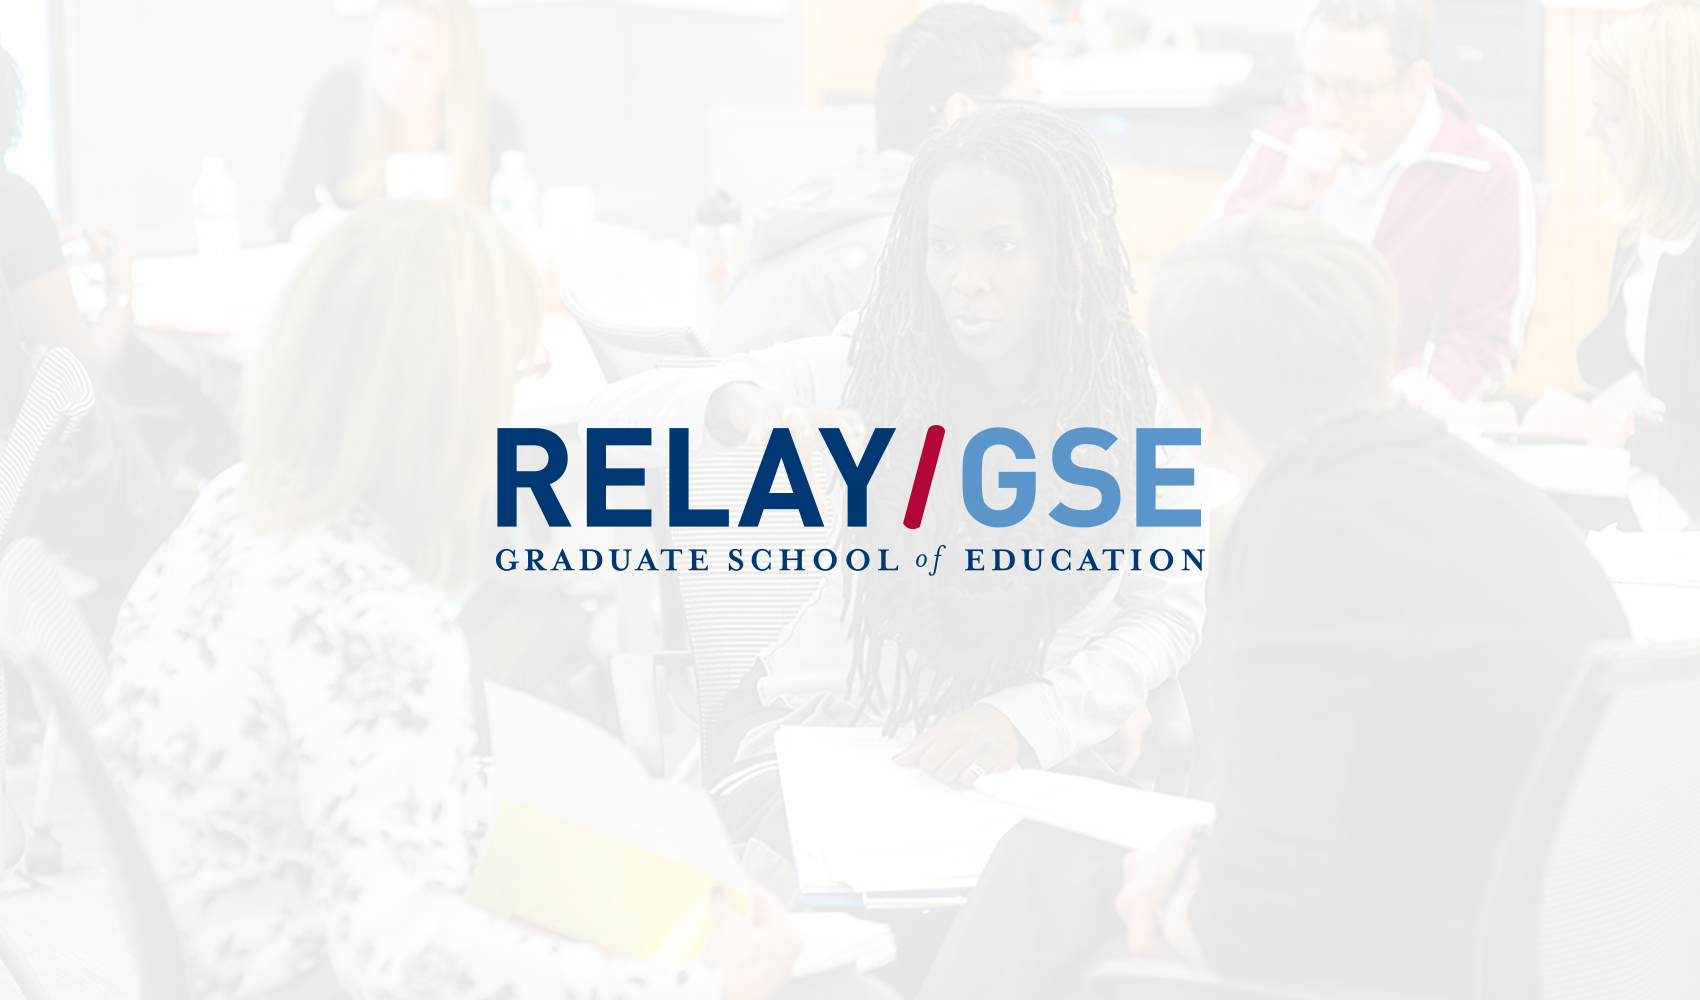 Vanguard - Brand Development for Relay GSE